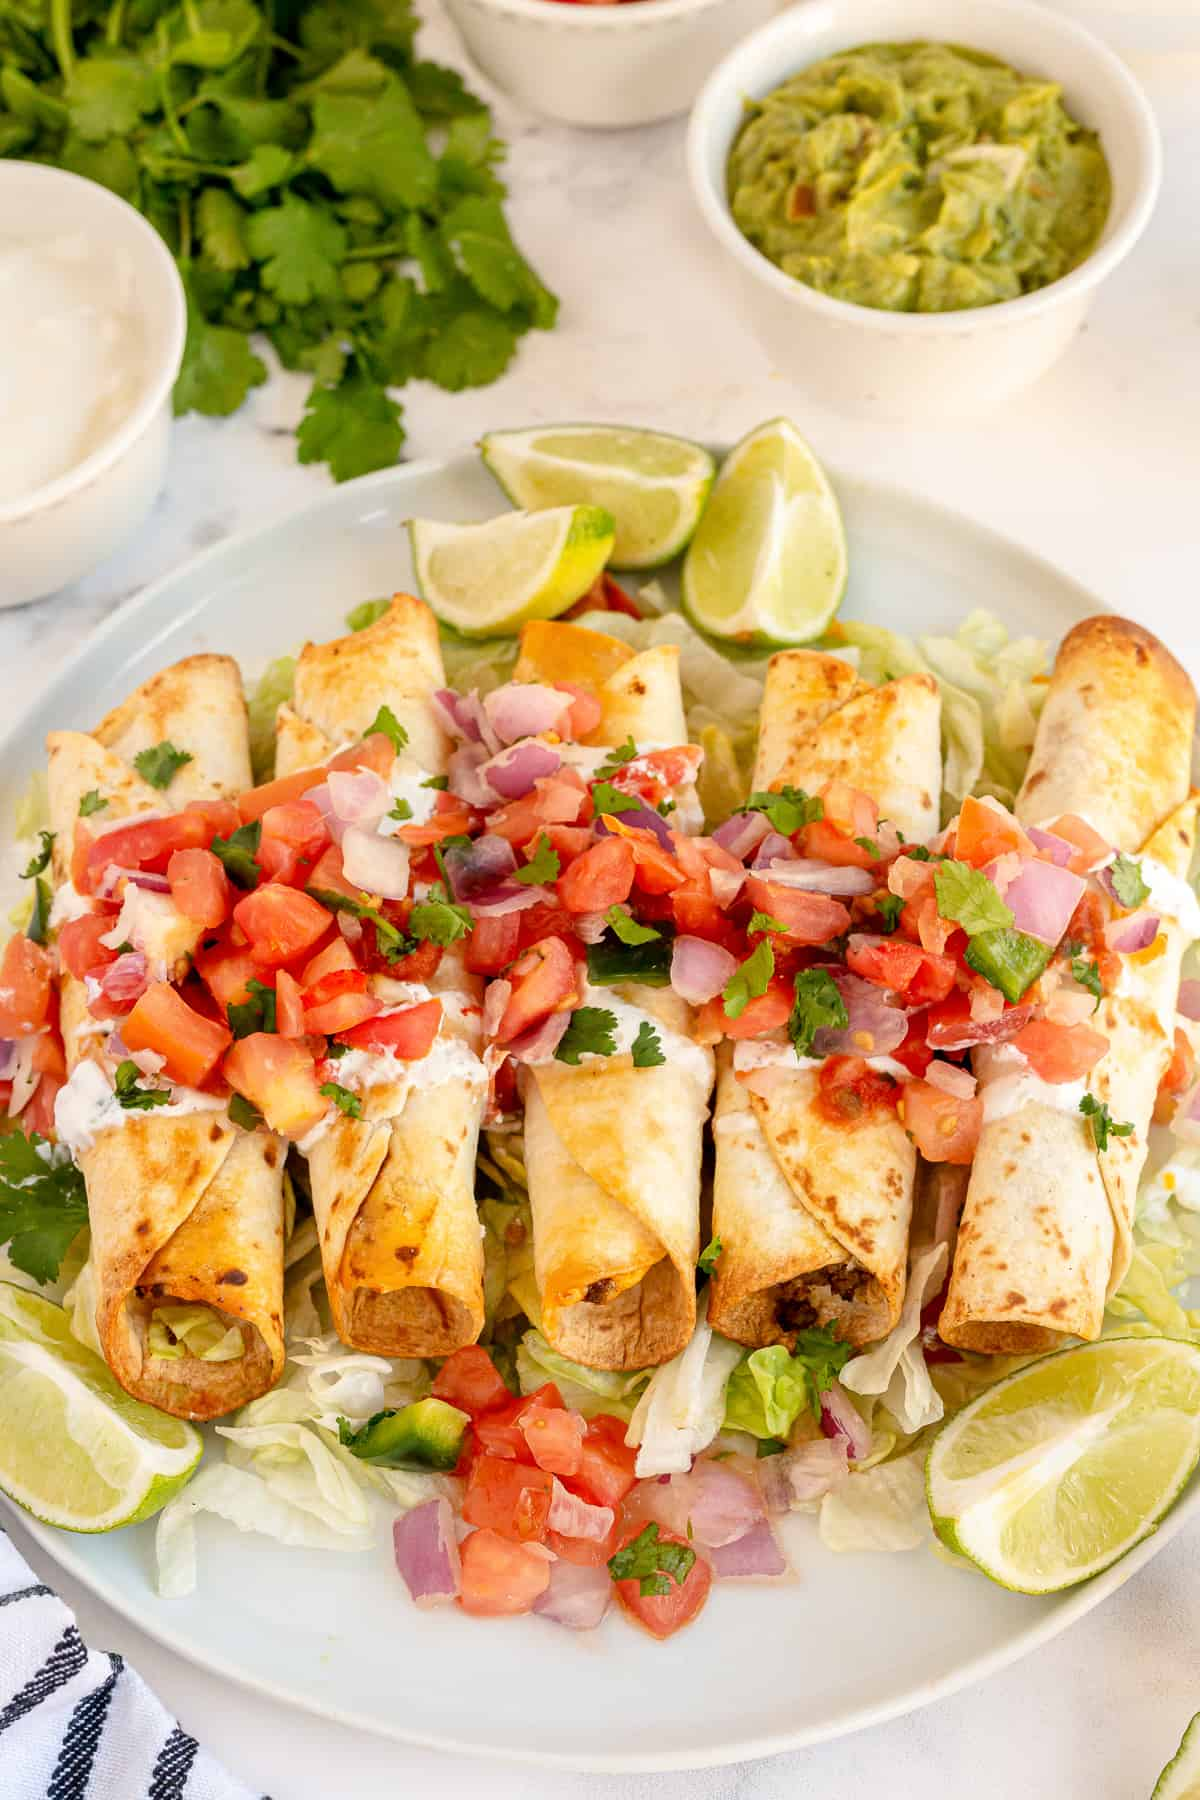 A platter of taquitos with toppings.